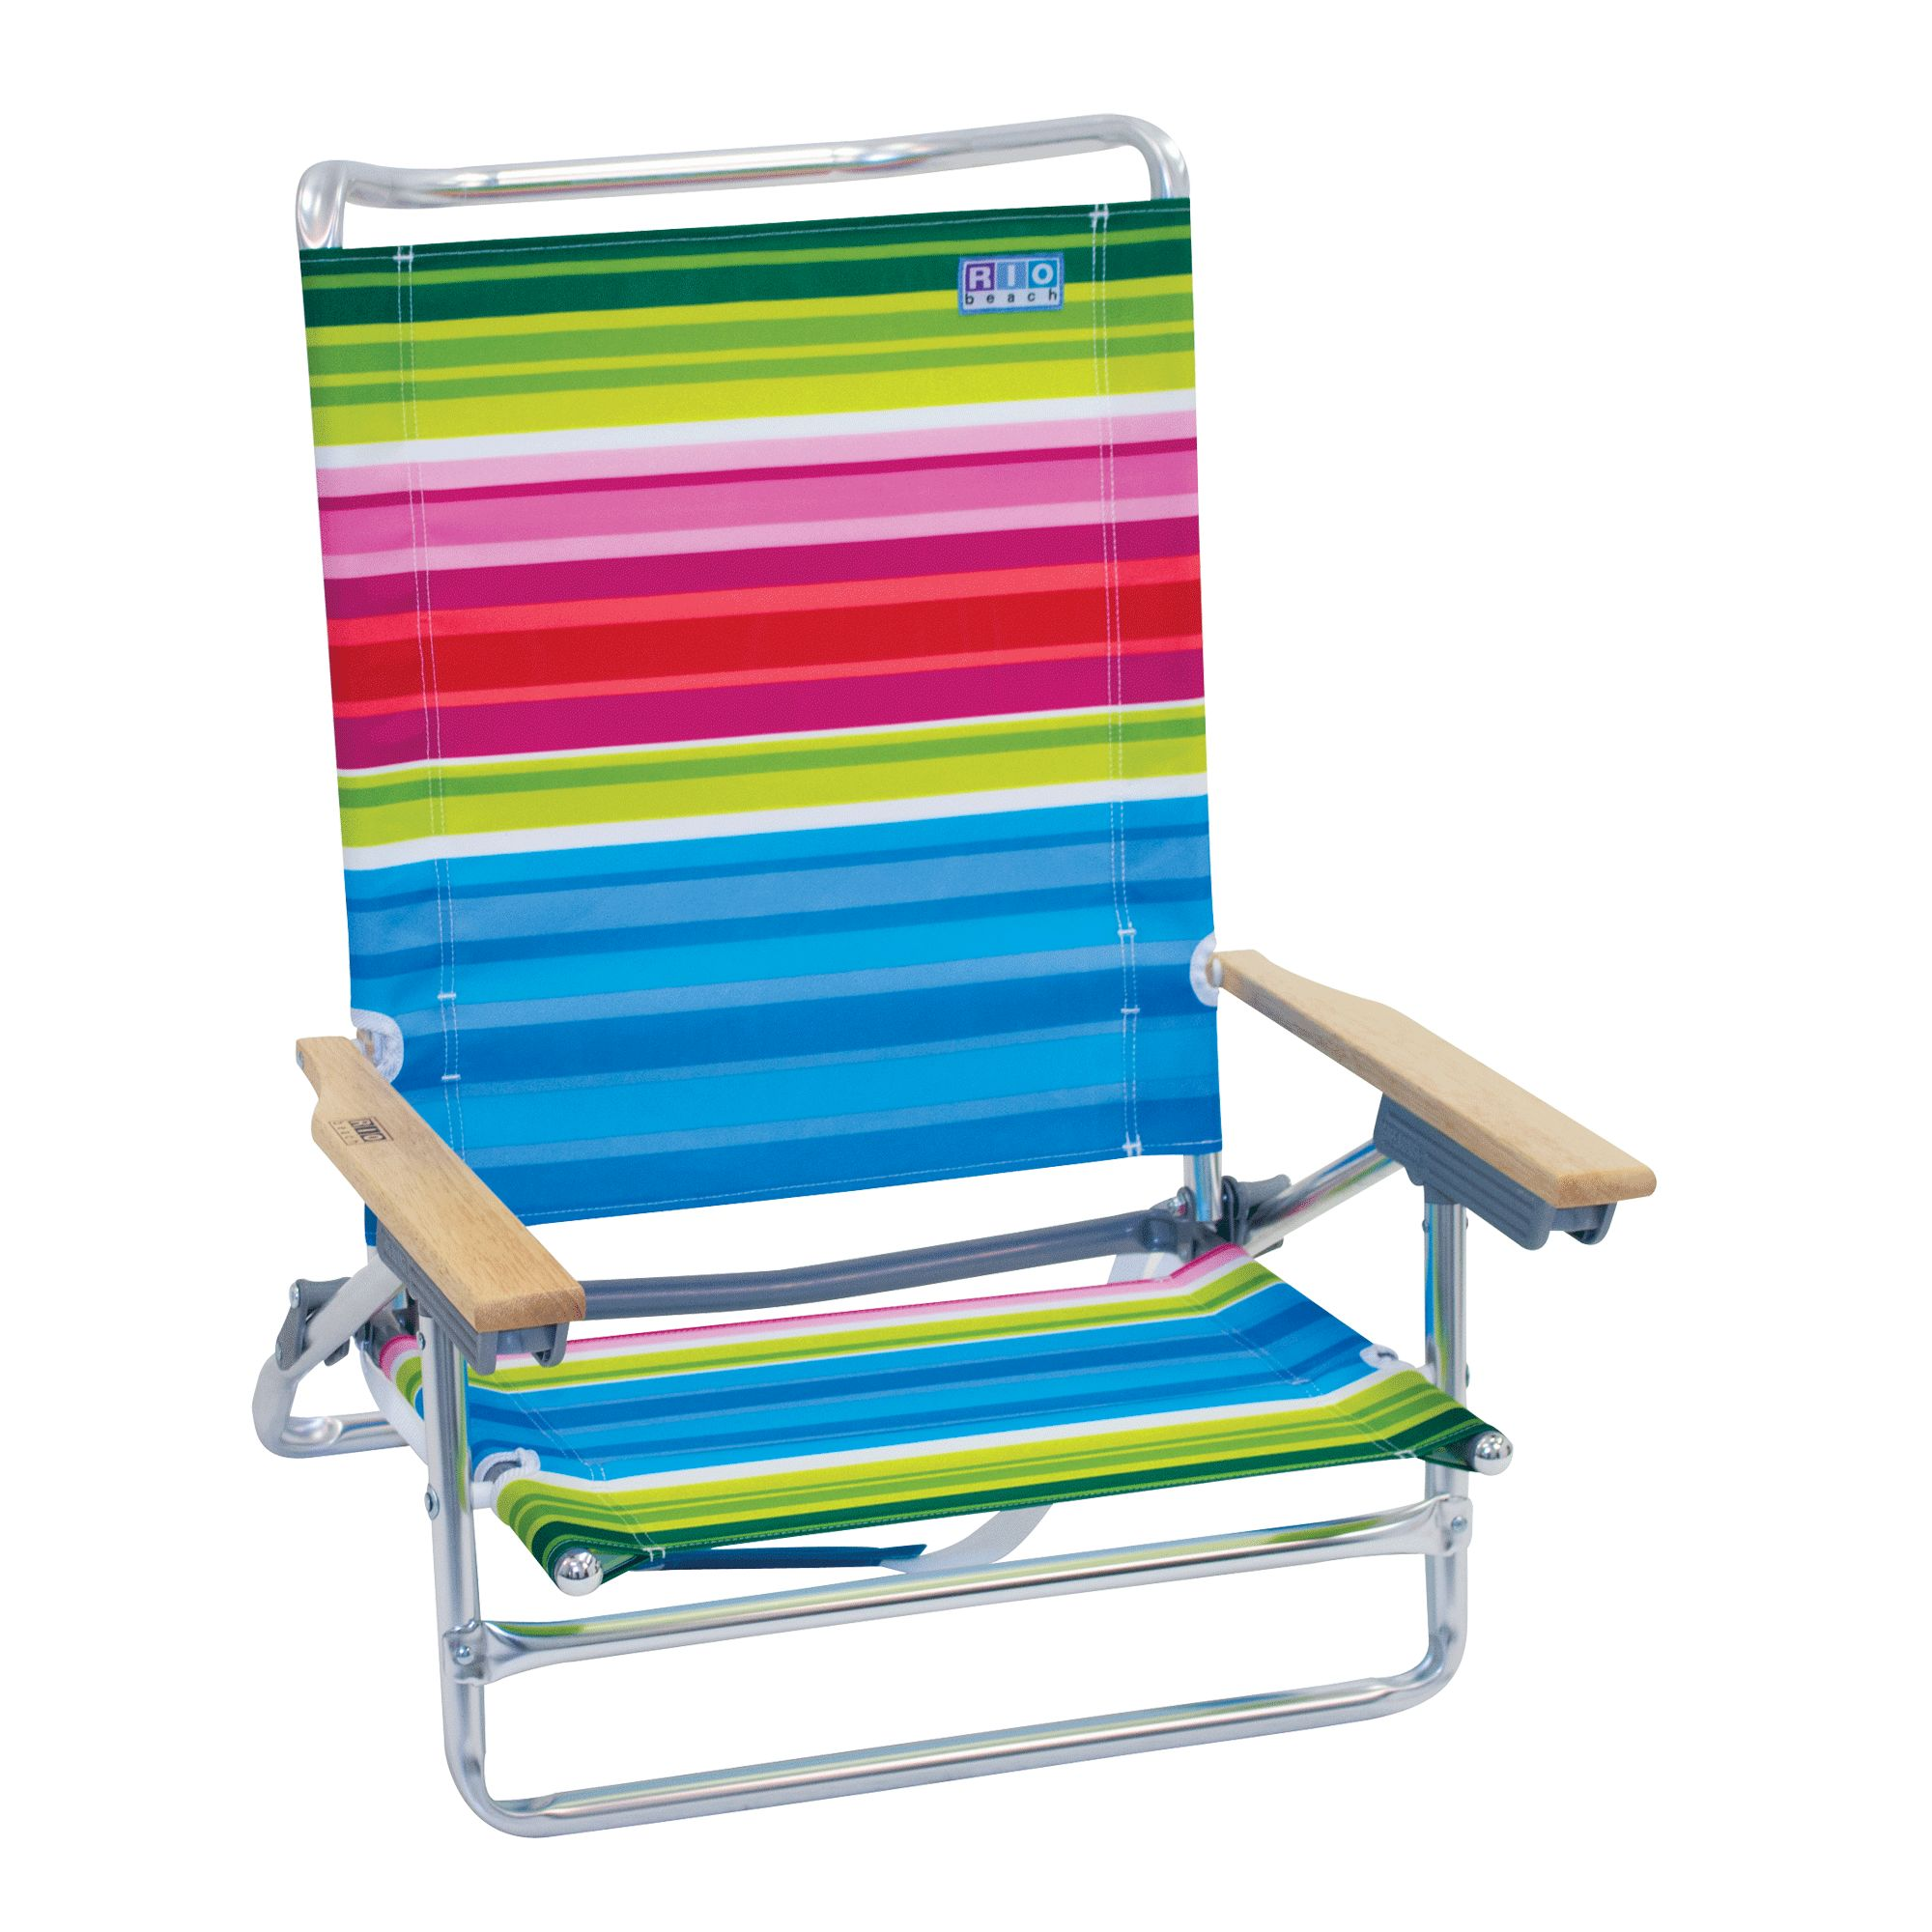 RIO Beach Classic 5-Position Lay Flat Beach Chair - Beach Club Stripes